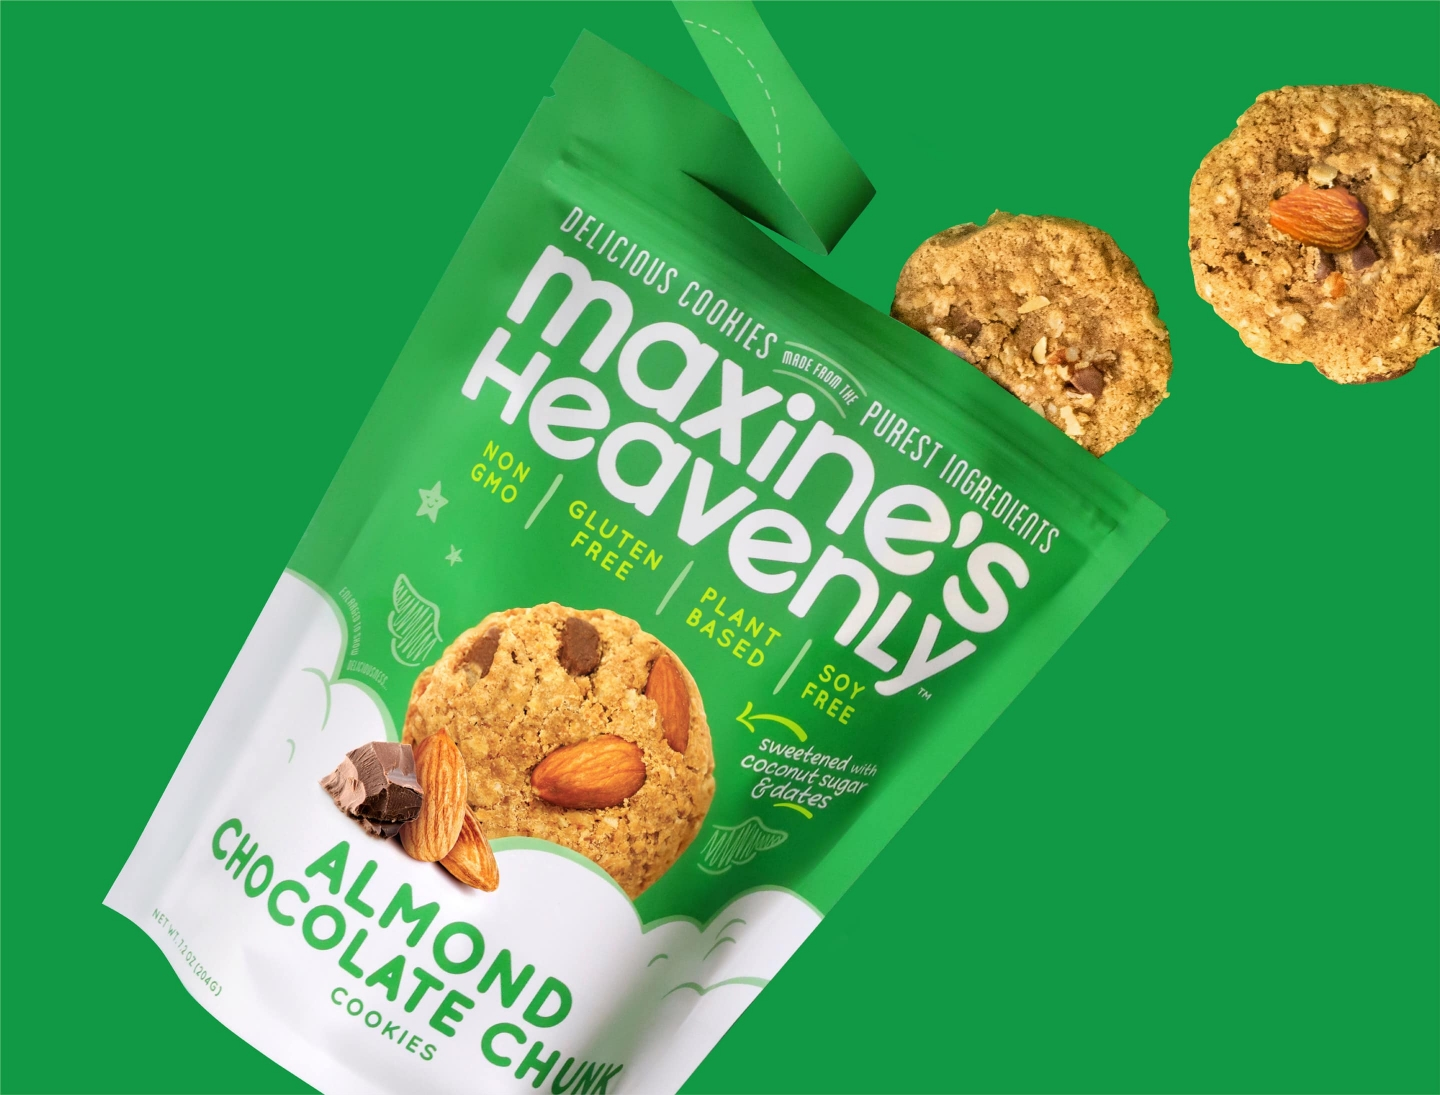 Maxine's Heavenly Almond flavor standup pouch with floating cookies